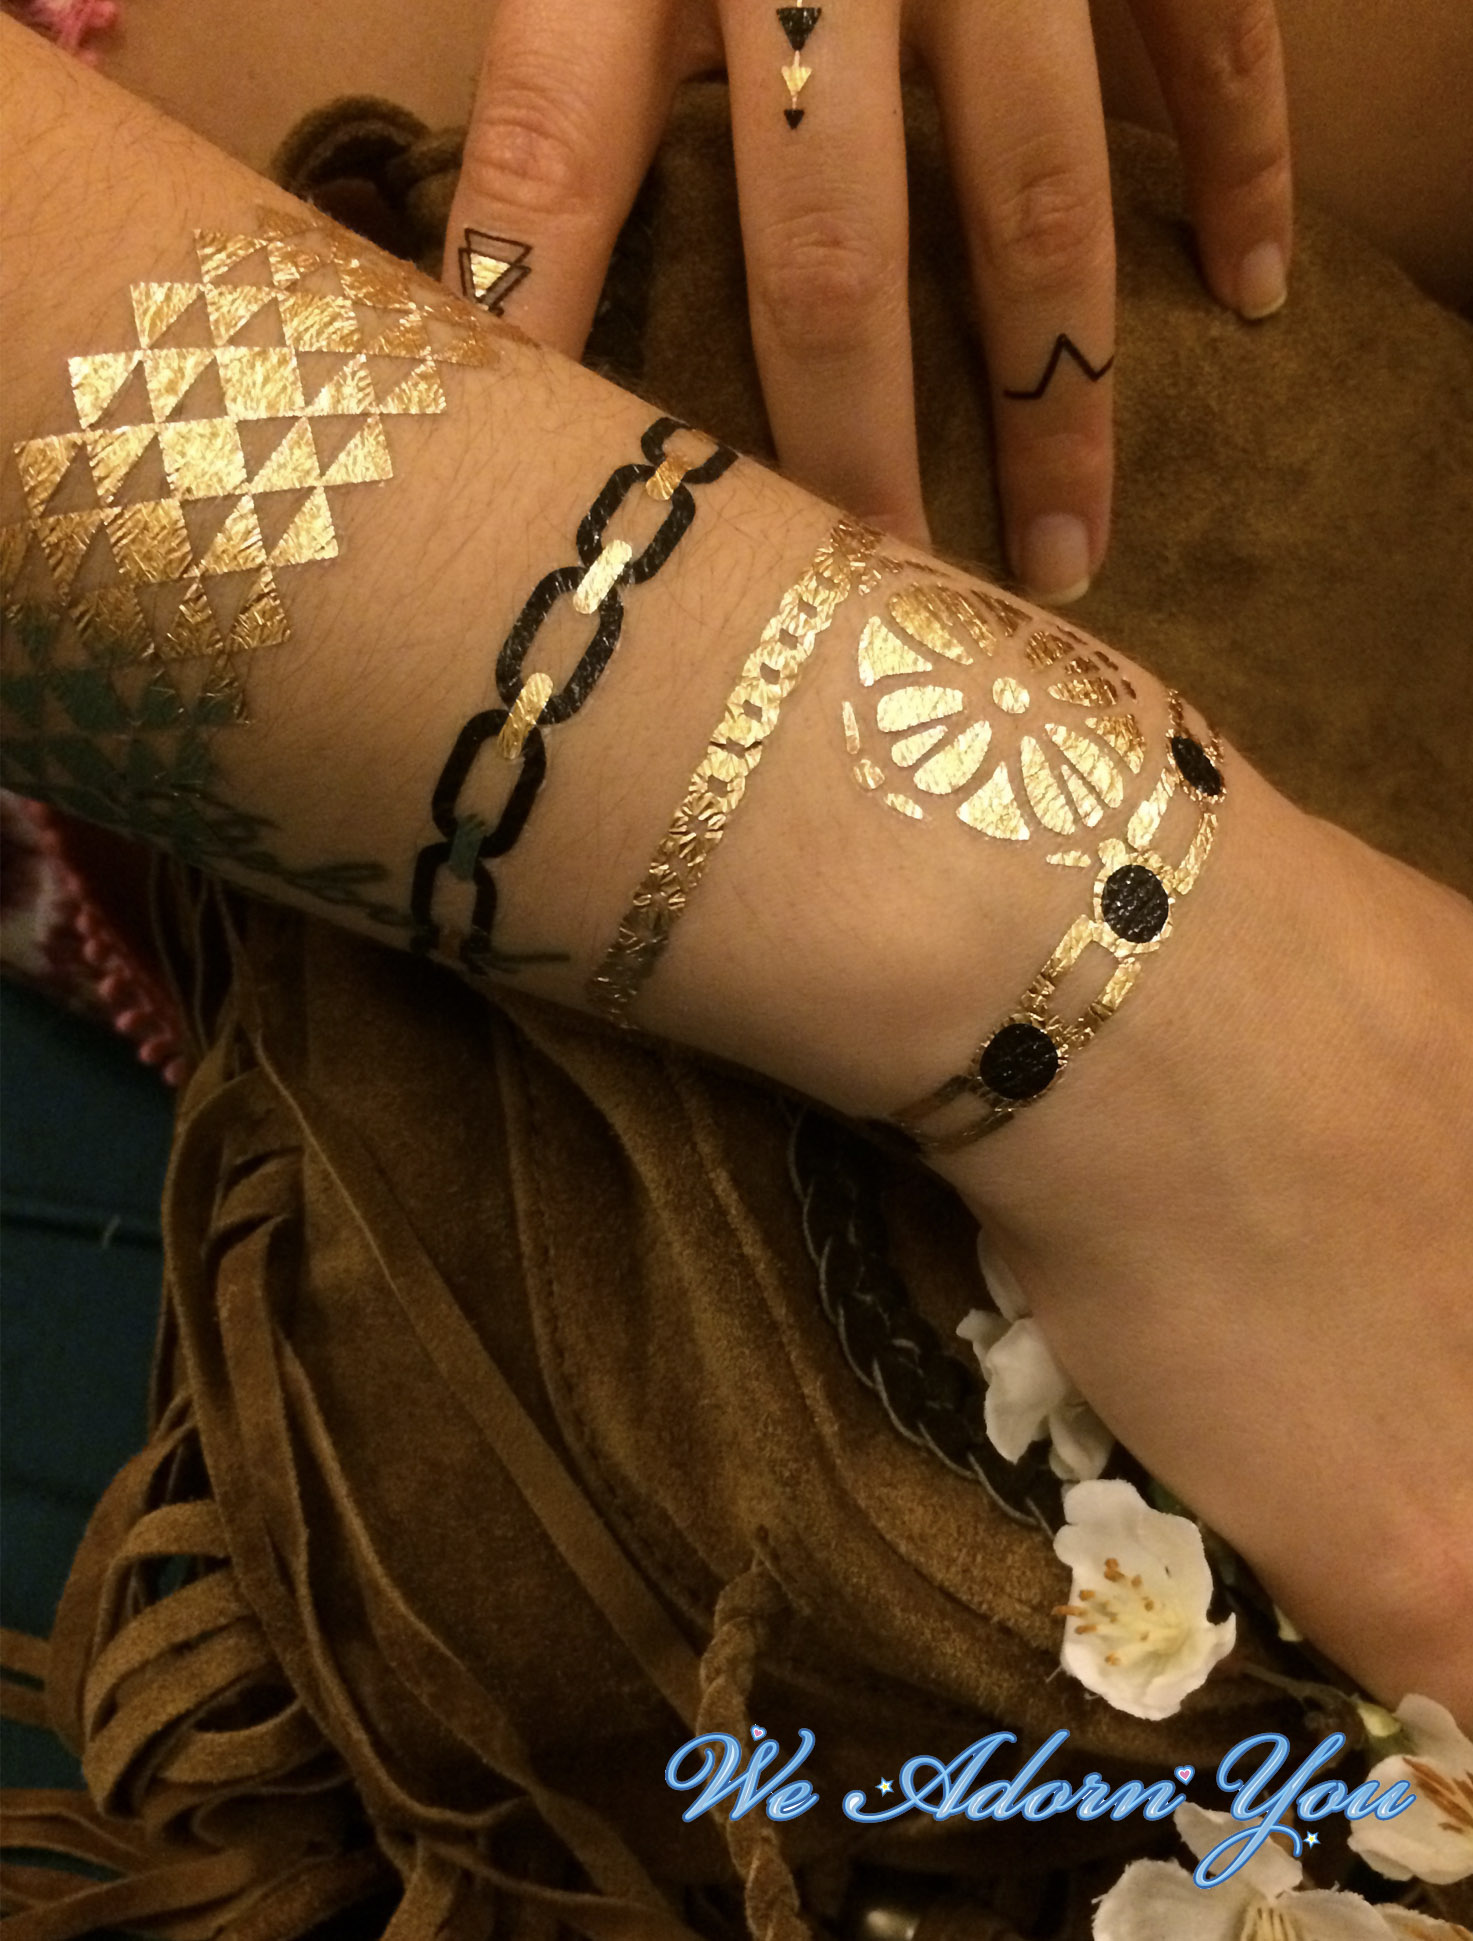 Flash Tattoo Geo Summer - We Adorn You.jpg